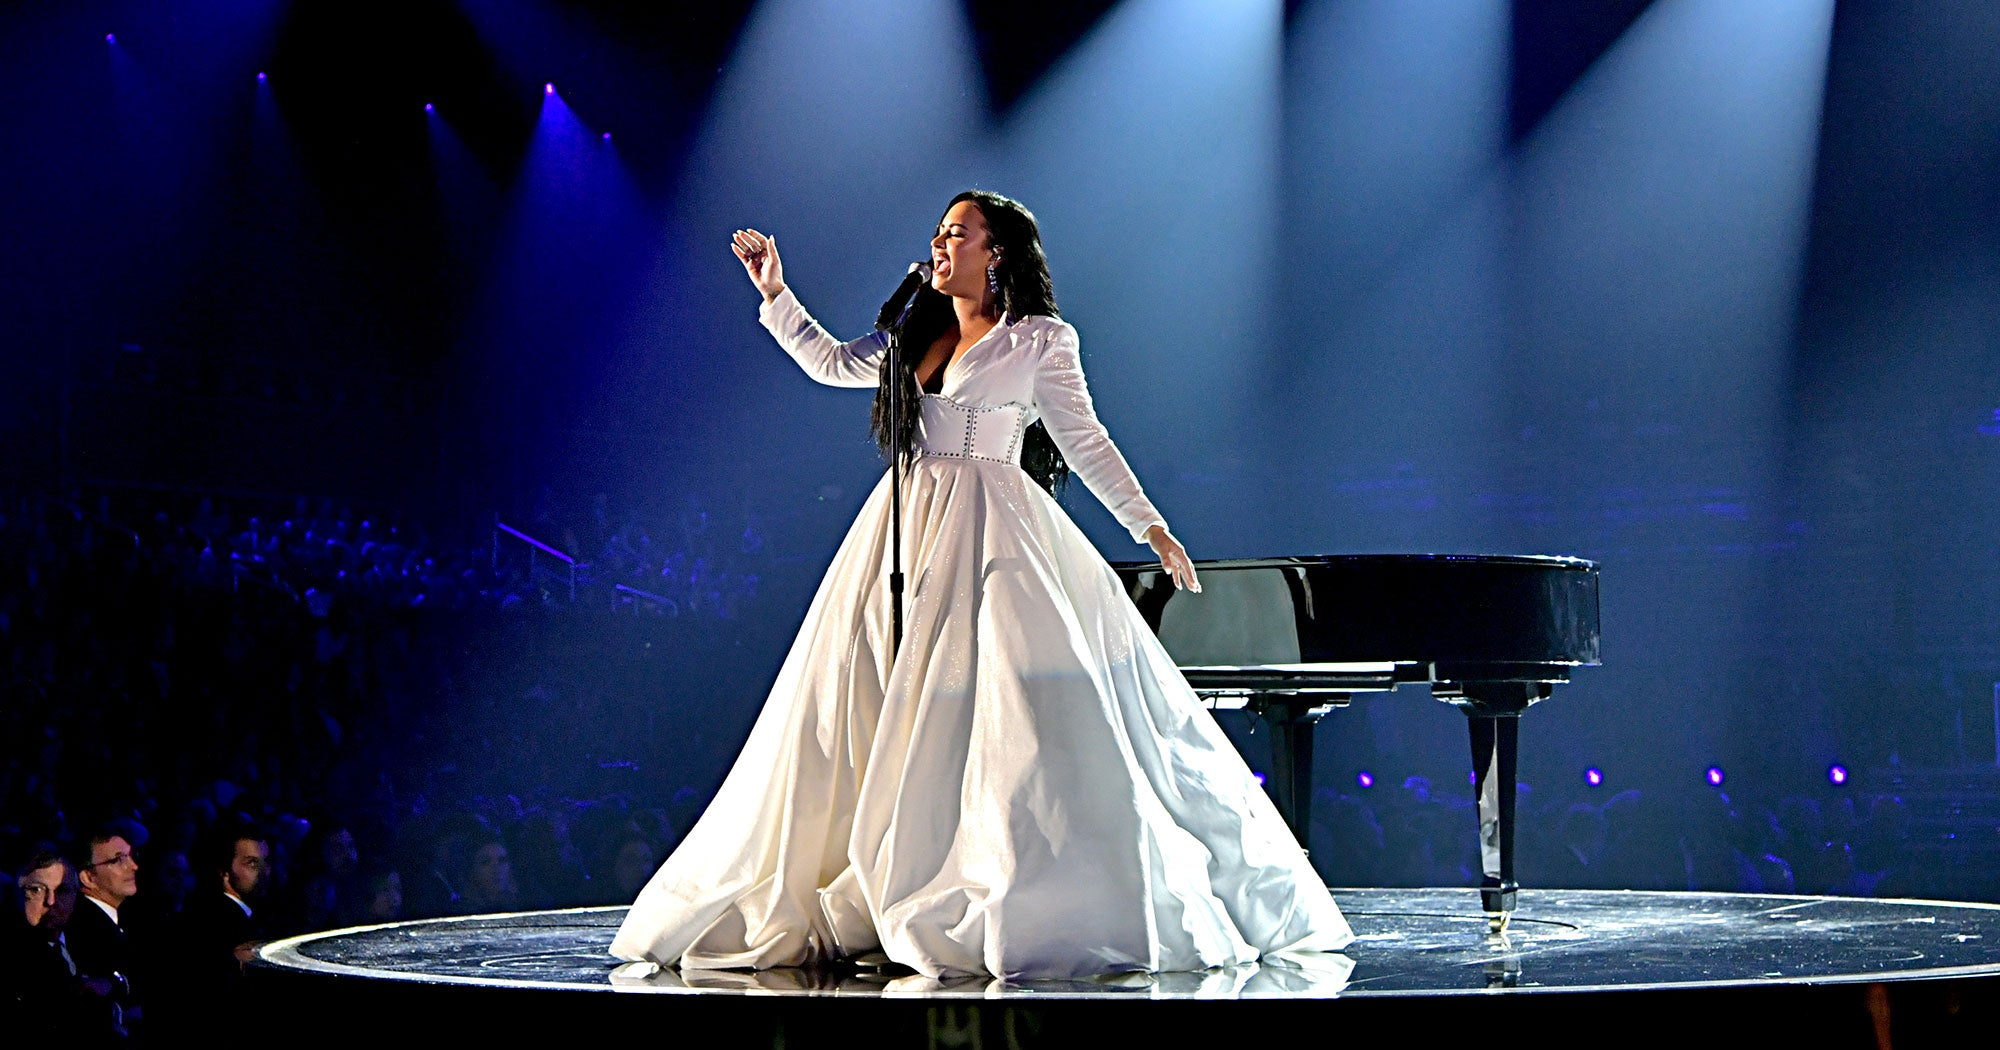 Demi Lovato Receives Standing Ovation For First Performance Since Hospitalization